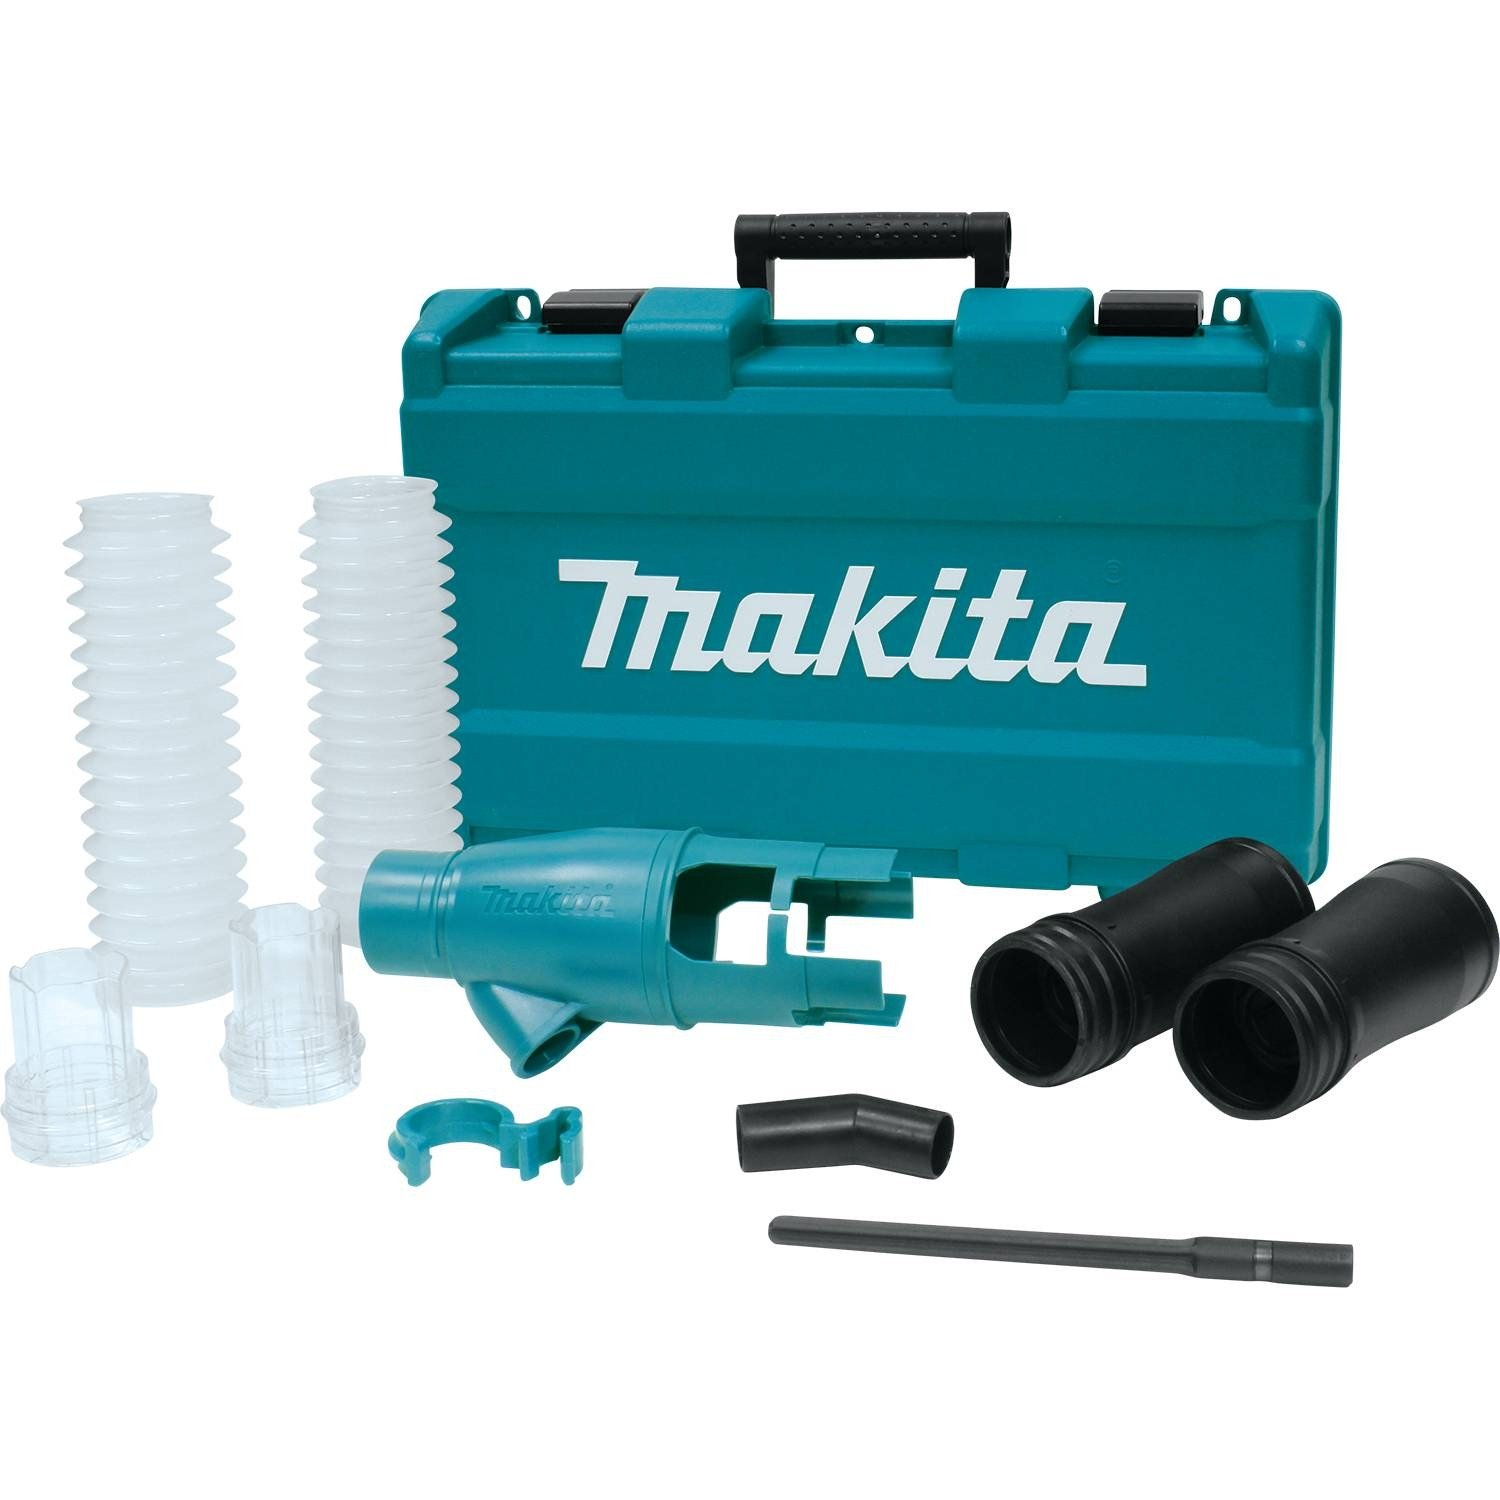 Makita 196537-4 SDS-MAX Drilling and Demolition Dust Extraction Attachment